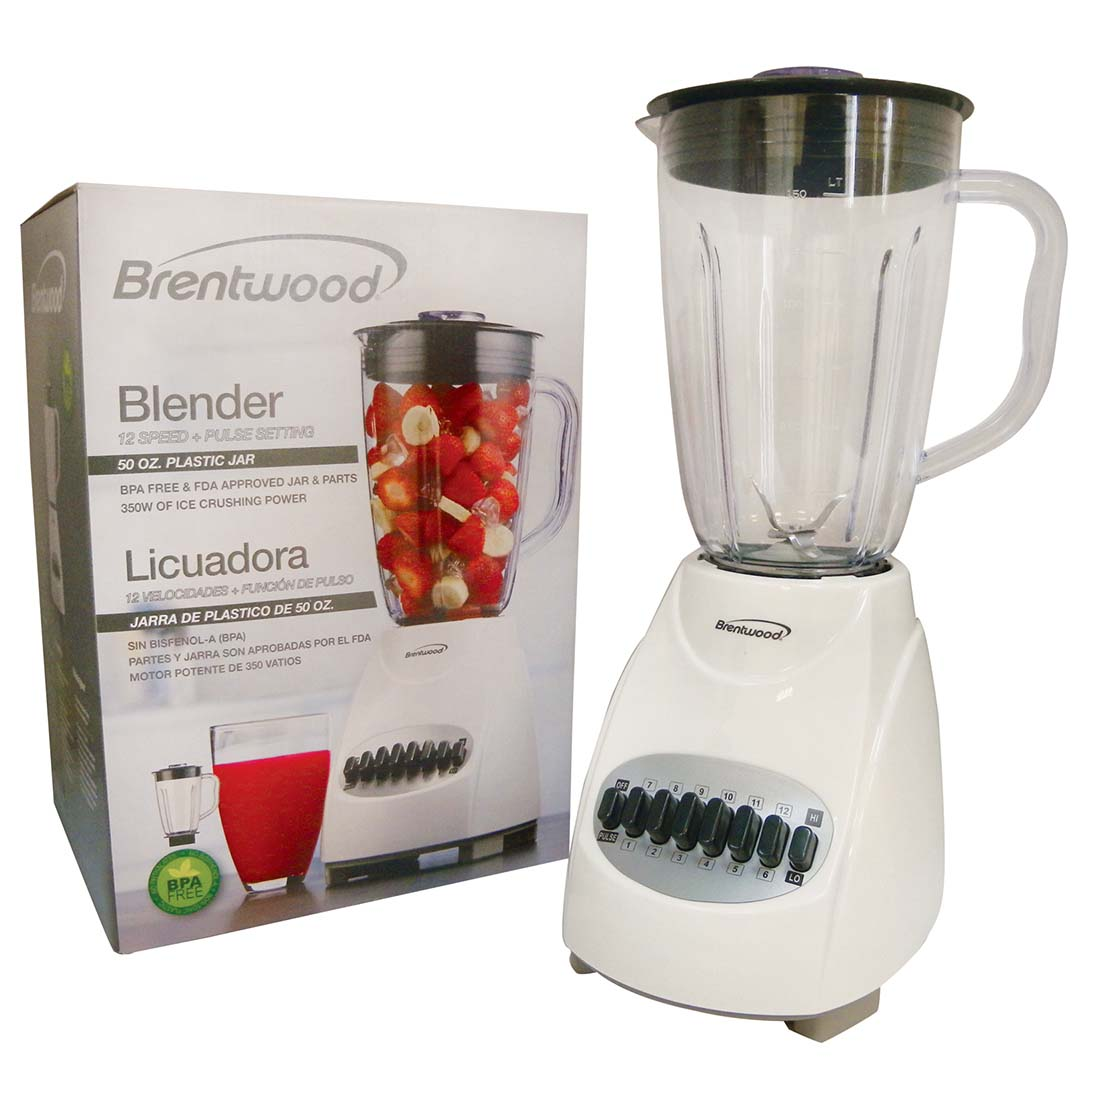 View BRENTWOOD 12 SPEED+PULSE BLENDER 50 OUNCE WHITE CETL LISTED